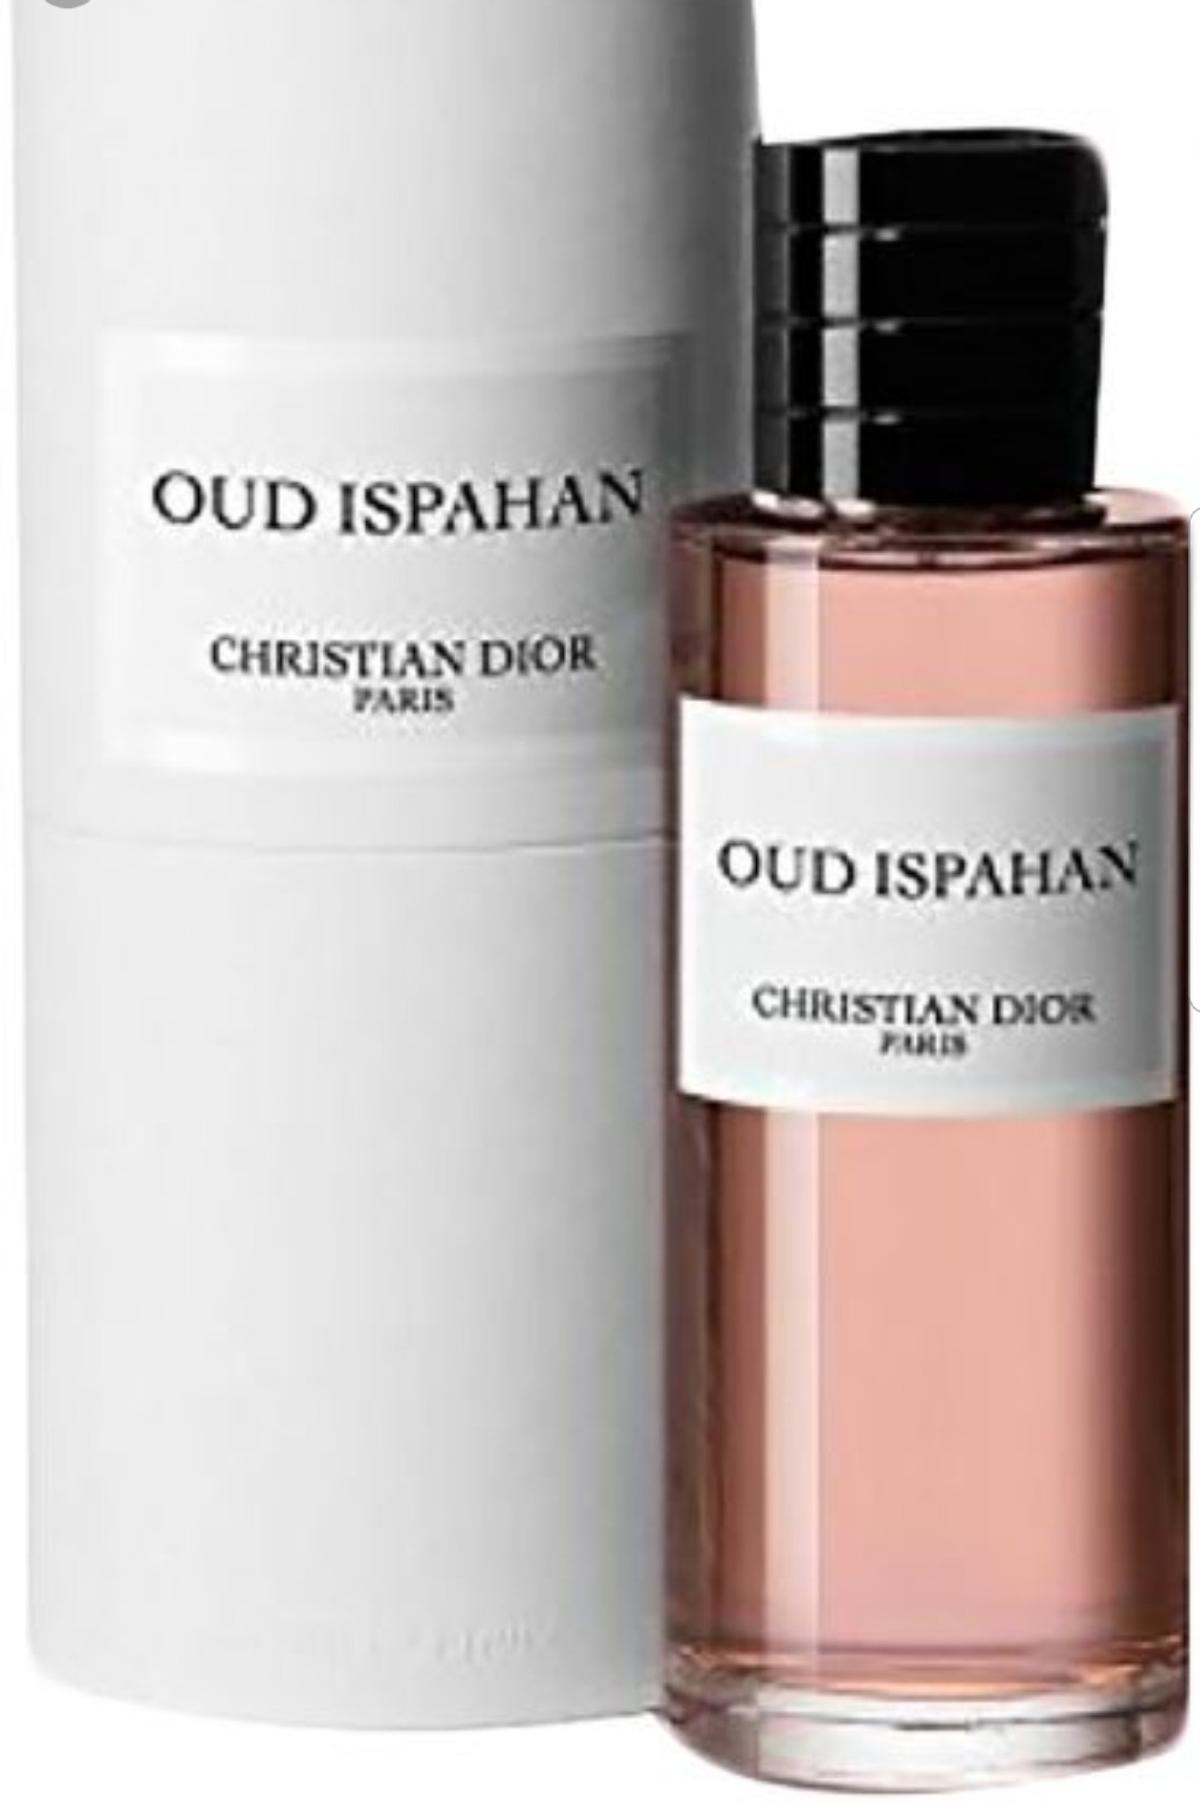 Oud Ispahan Christian Dior 125ml Edp In London Borough Of Hounslow